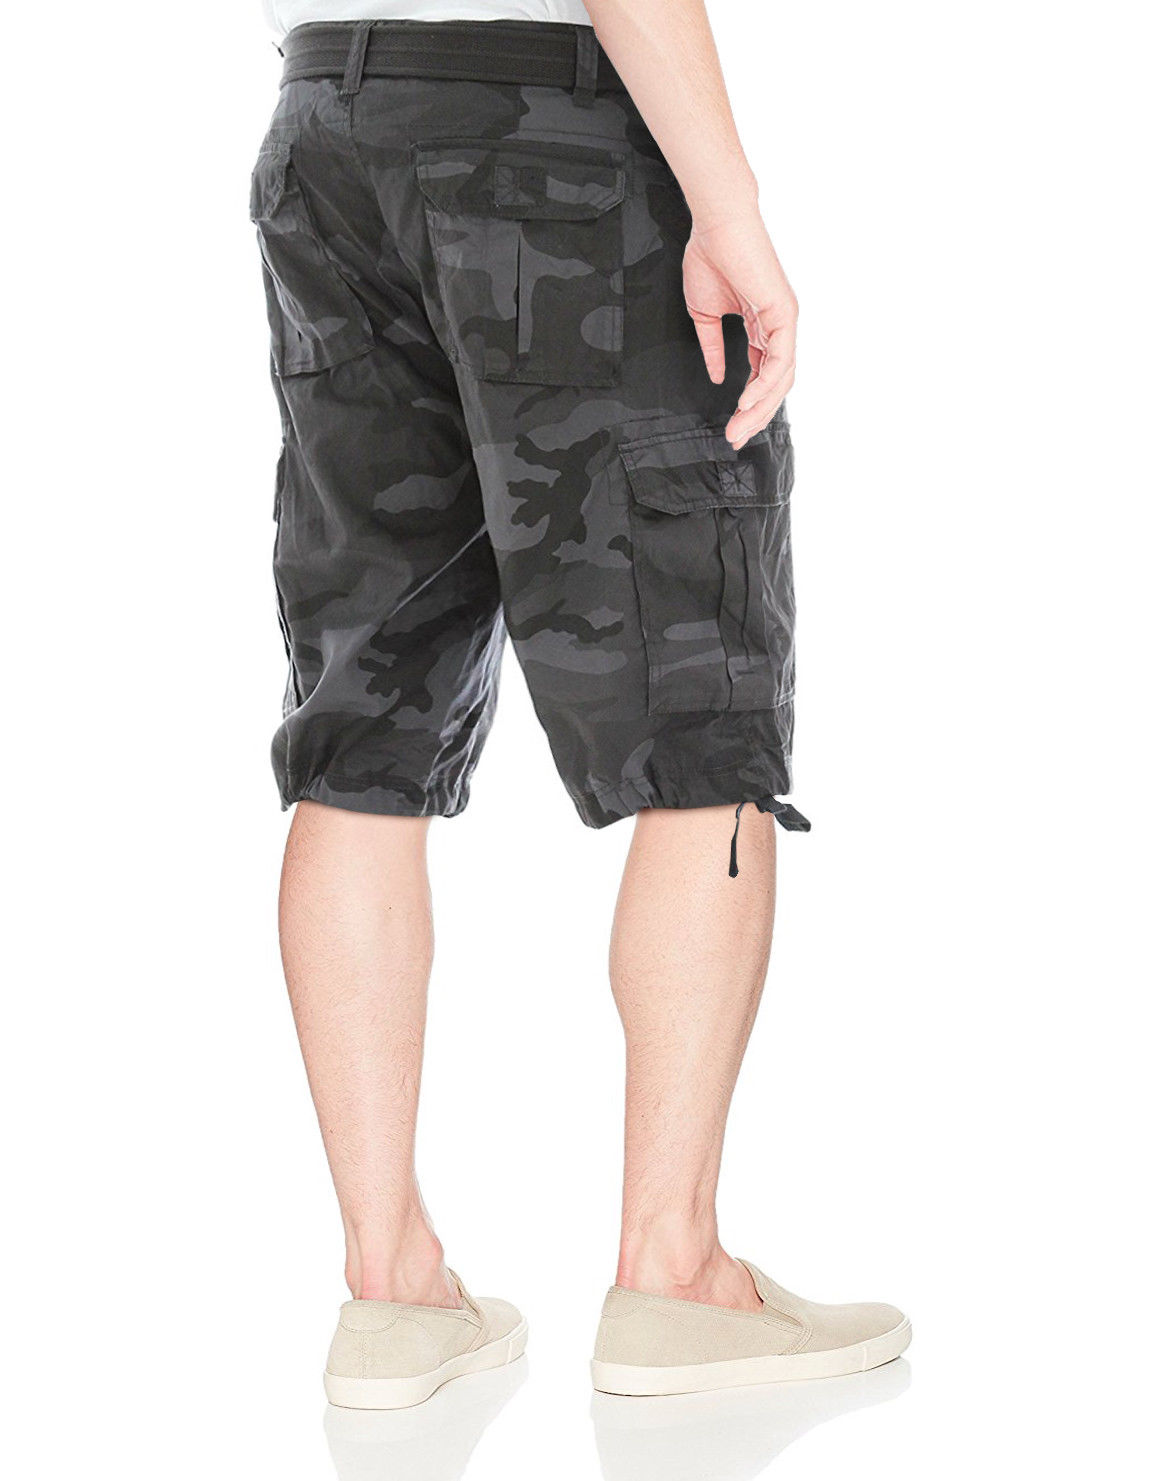 Men-039-s-Tactical-Combat-Military-Army-Cotton-Twill-Camo-Cargo-Shorts-With-Belt thumbnail 8